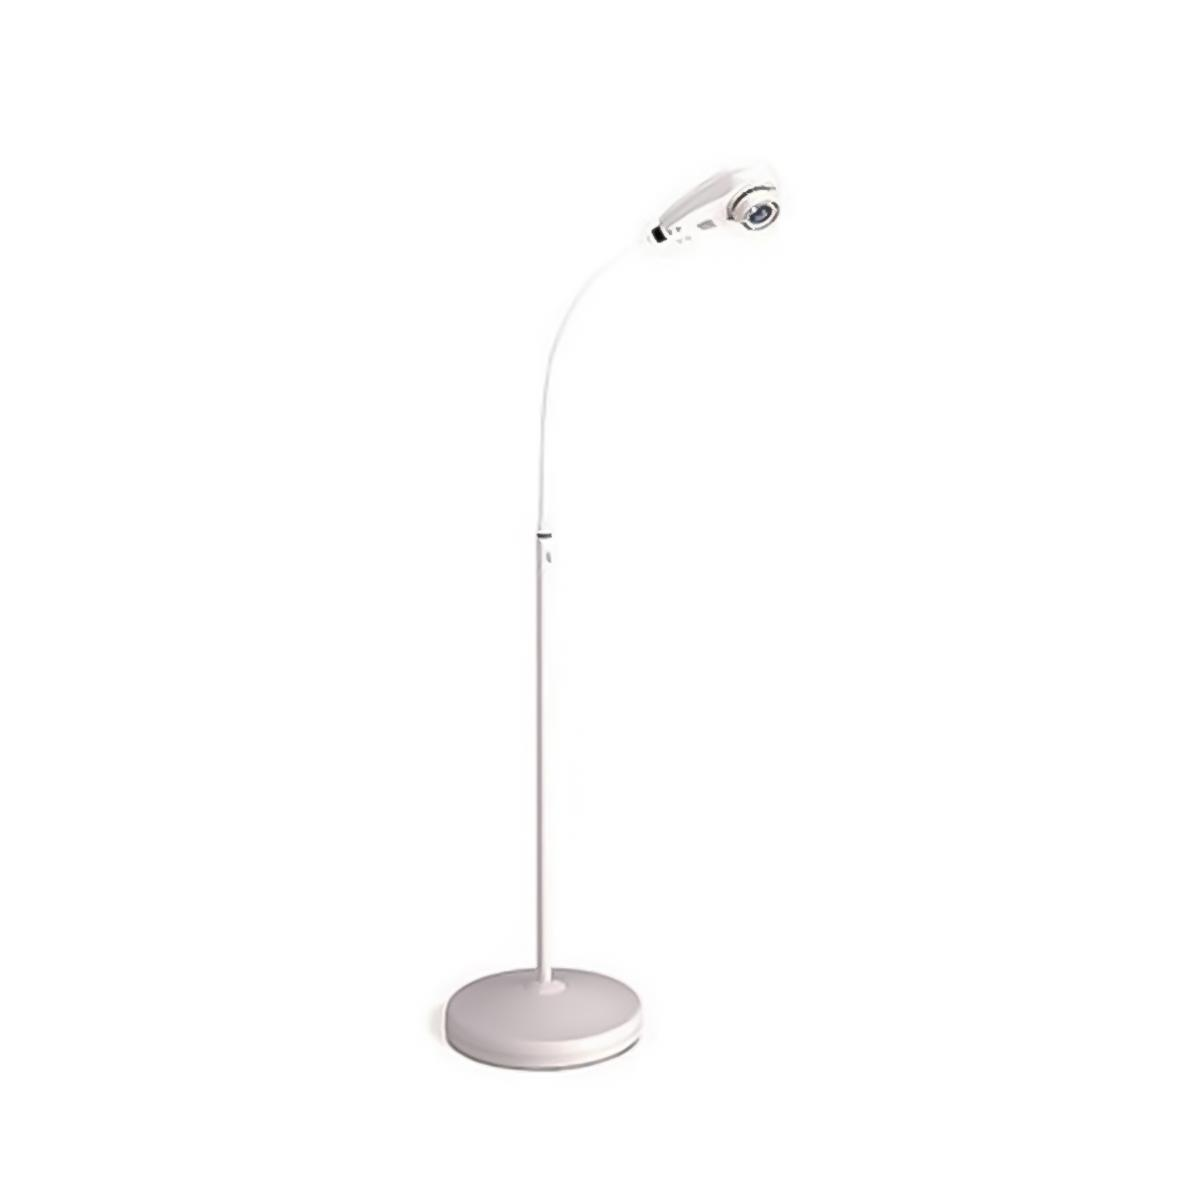 A white, free-standing Welch Allyn LS150 Examination Light.